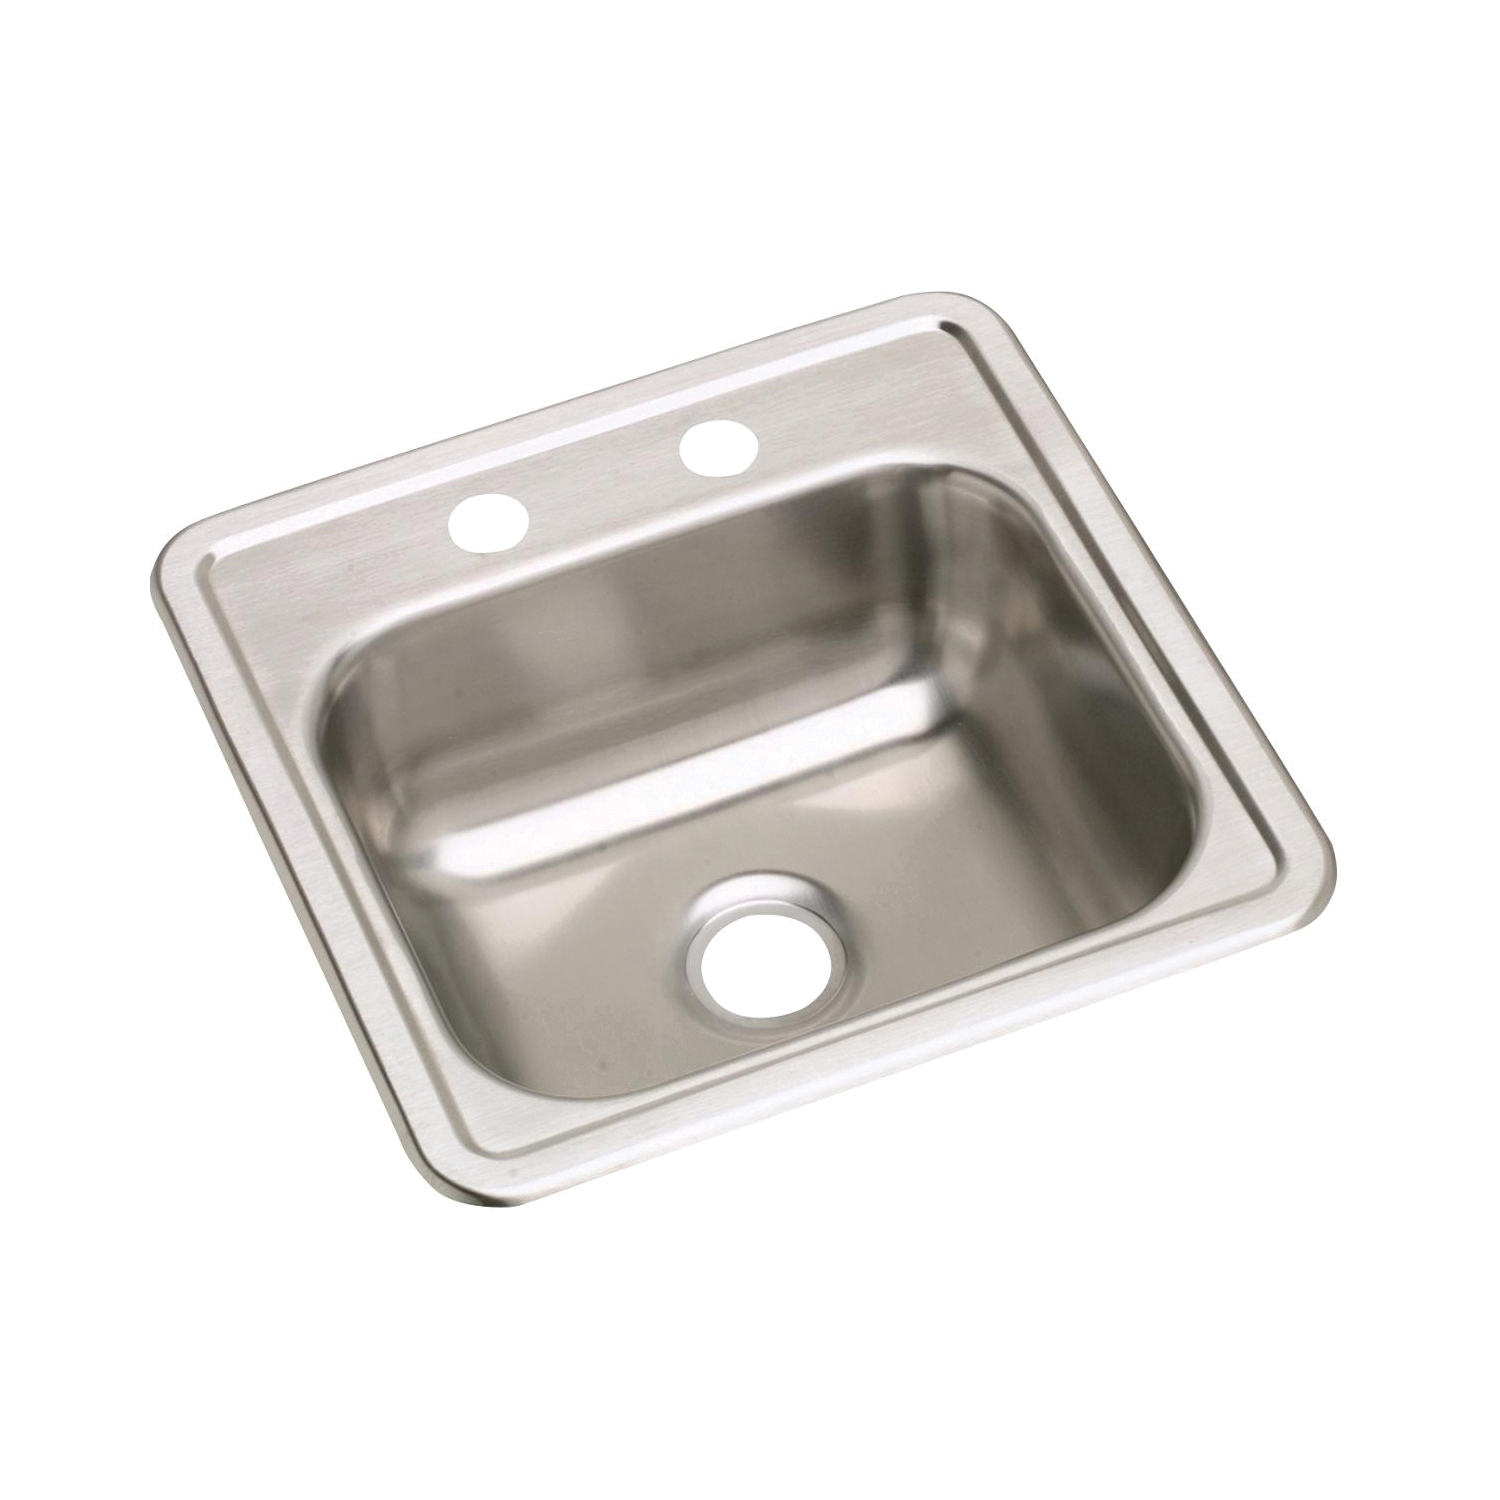 Elkay® D115151 Dayton® Bar Sink, Square, 1 Faucet Hole, 15 in W x 5-3/16 in D x 15 in H, Top Mount, Stainless Steel, Satin, Domestic